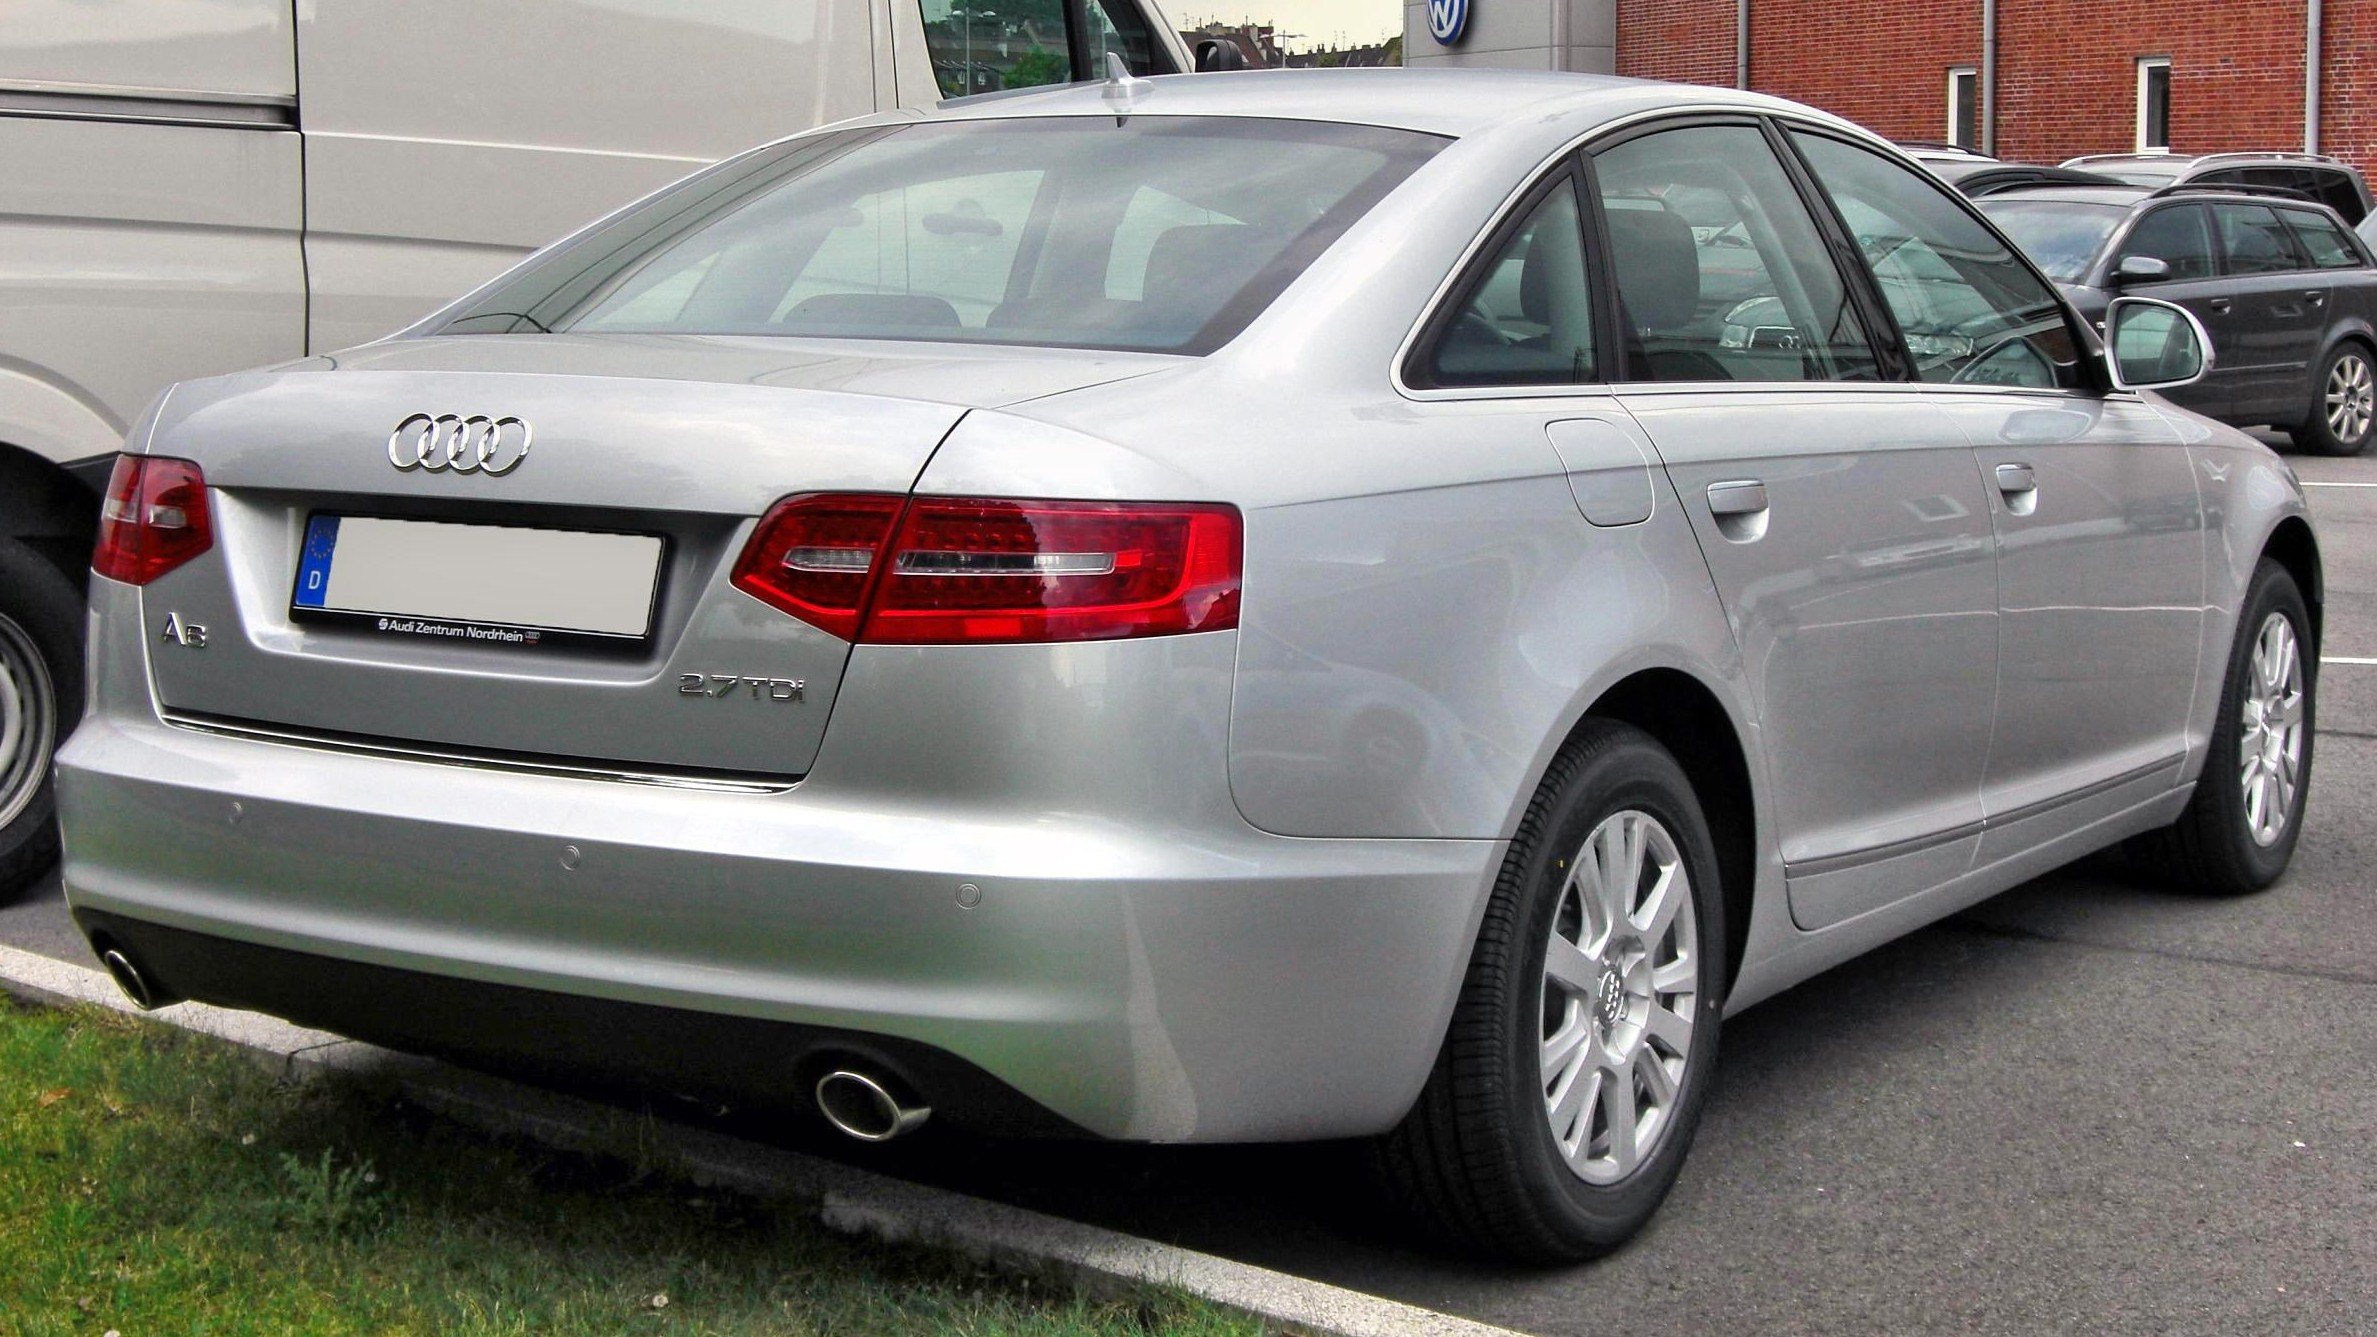 File:Audi A6 C6 Facelift 20090712 rear.JPG - Wikipedia